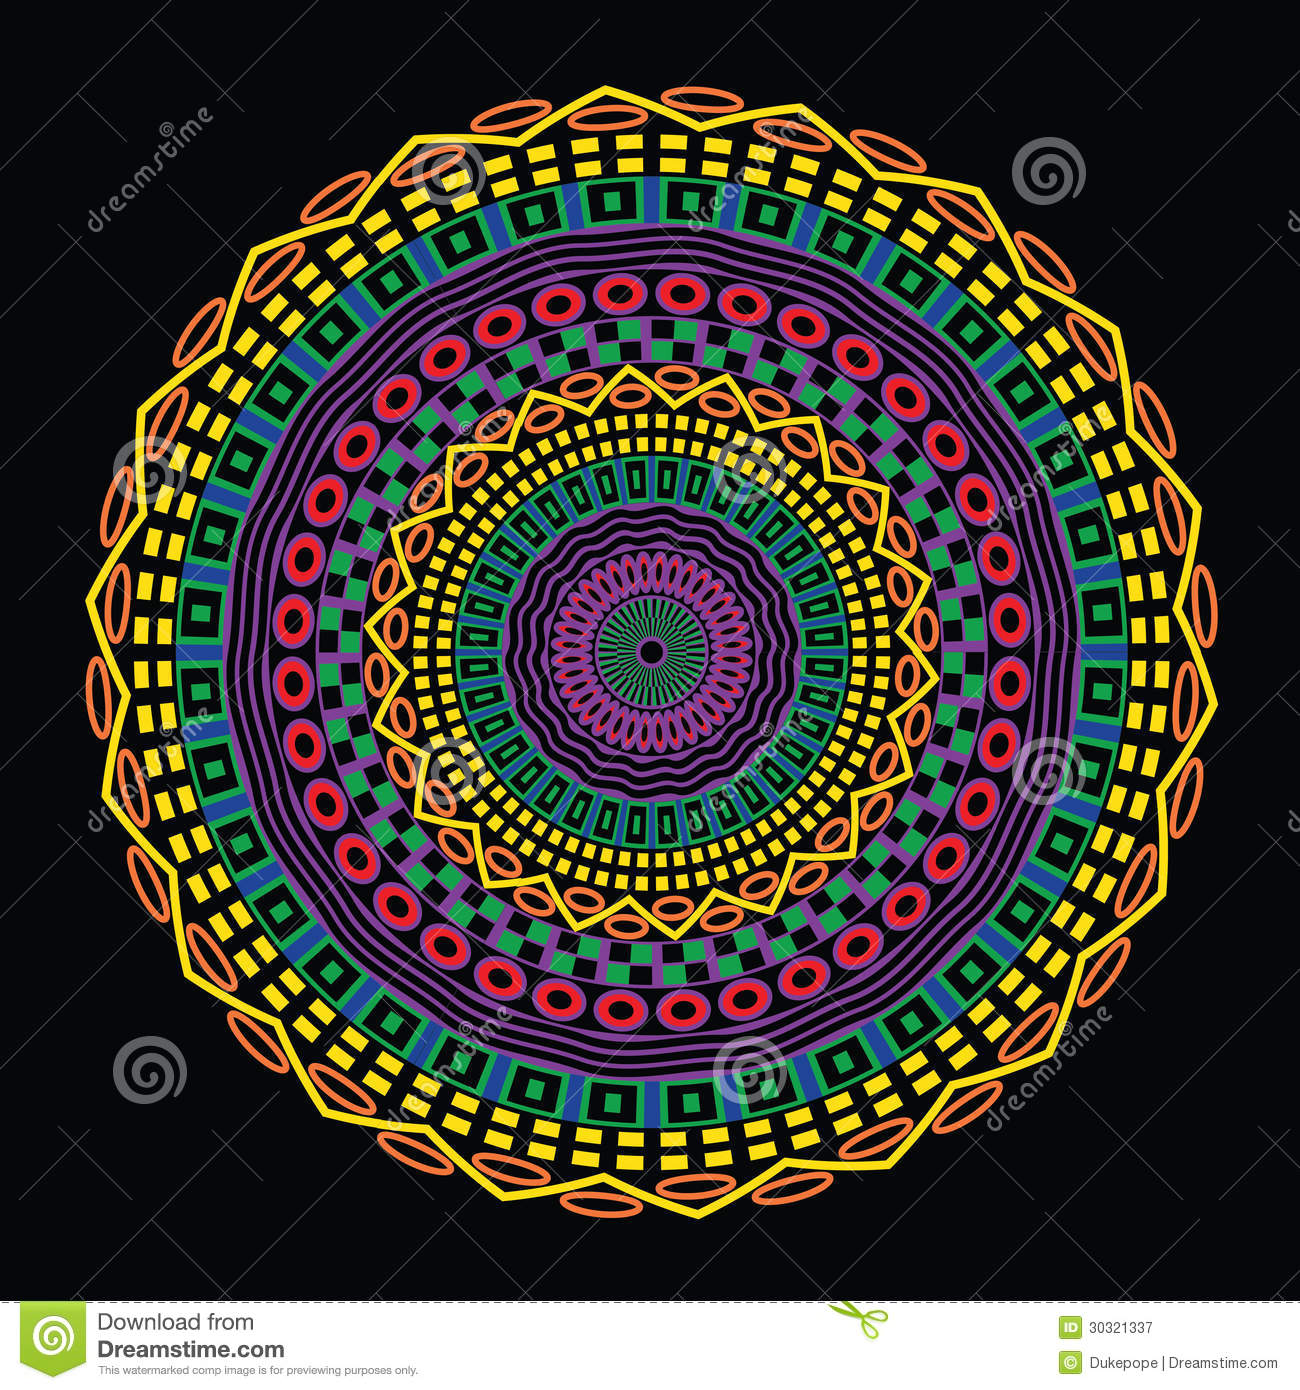 Colorful Circular Ethnic Design Royalty Free Stock